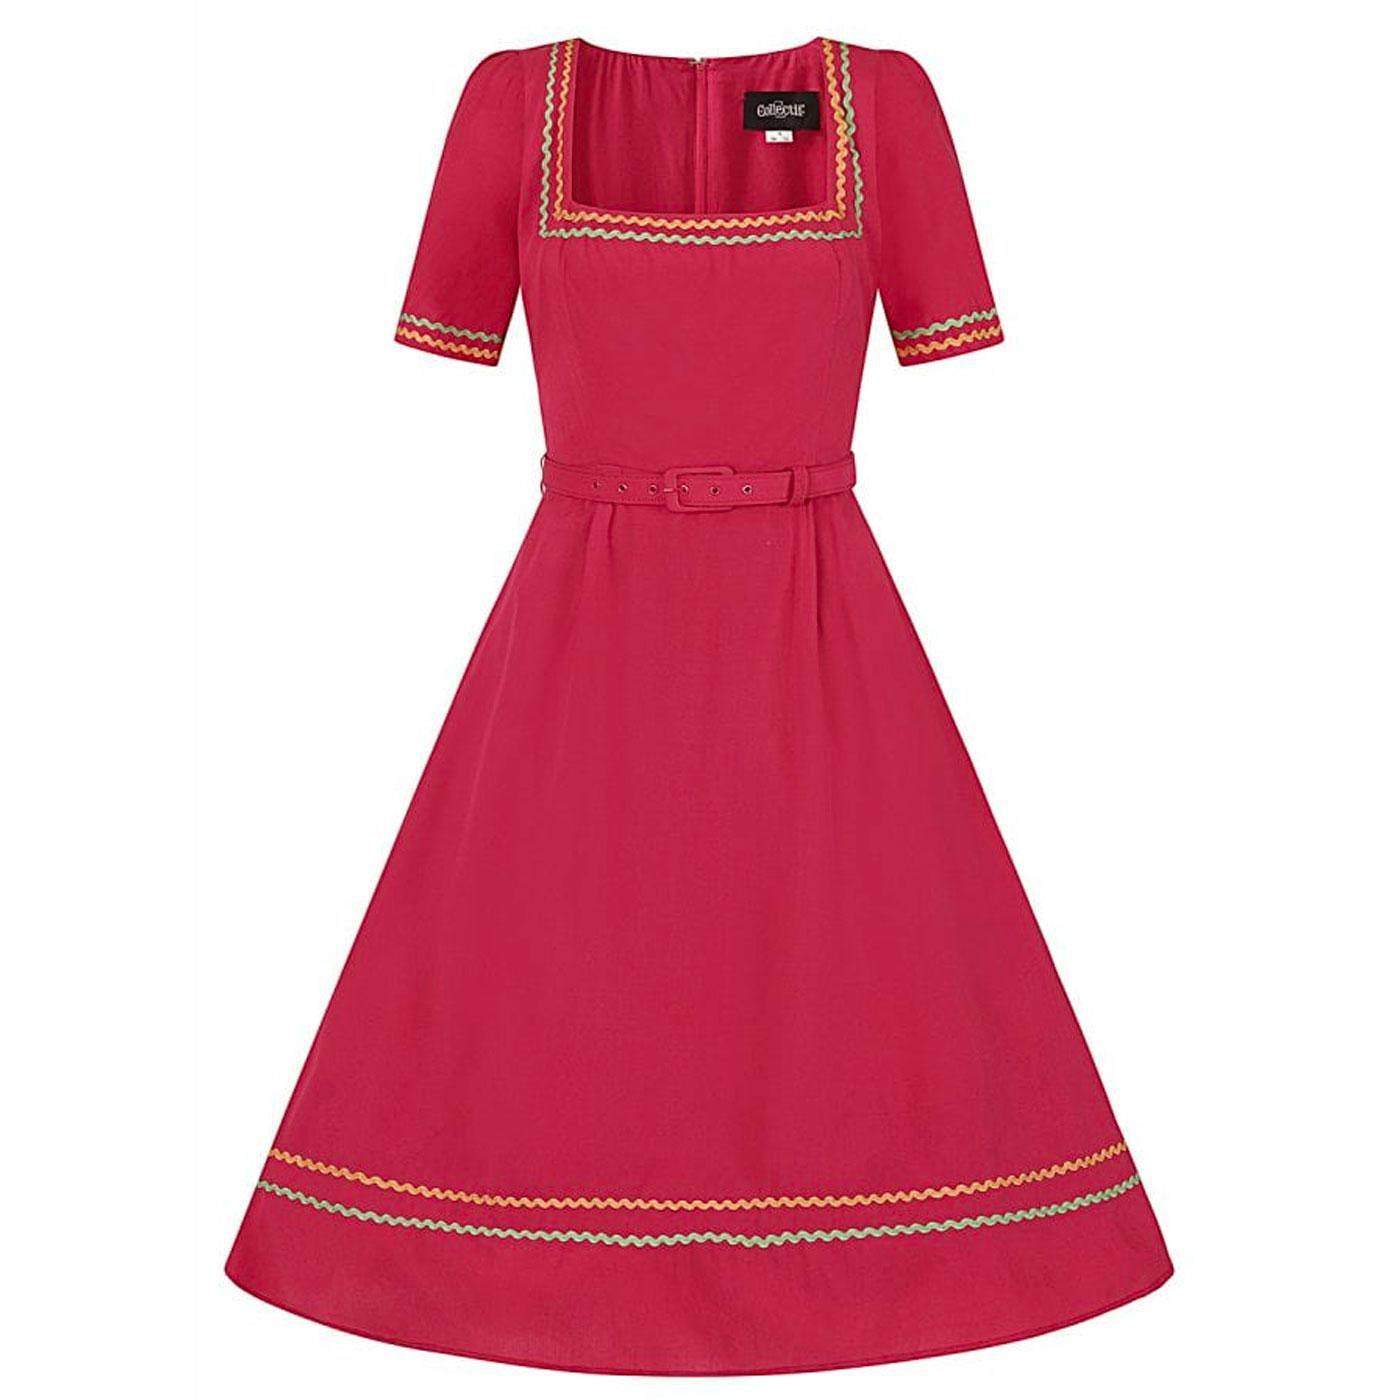 Tilda COLLECTIF Retro 50s Flared Dress in Red